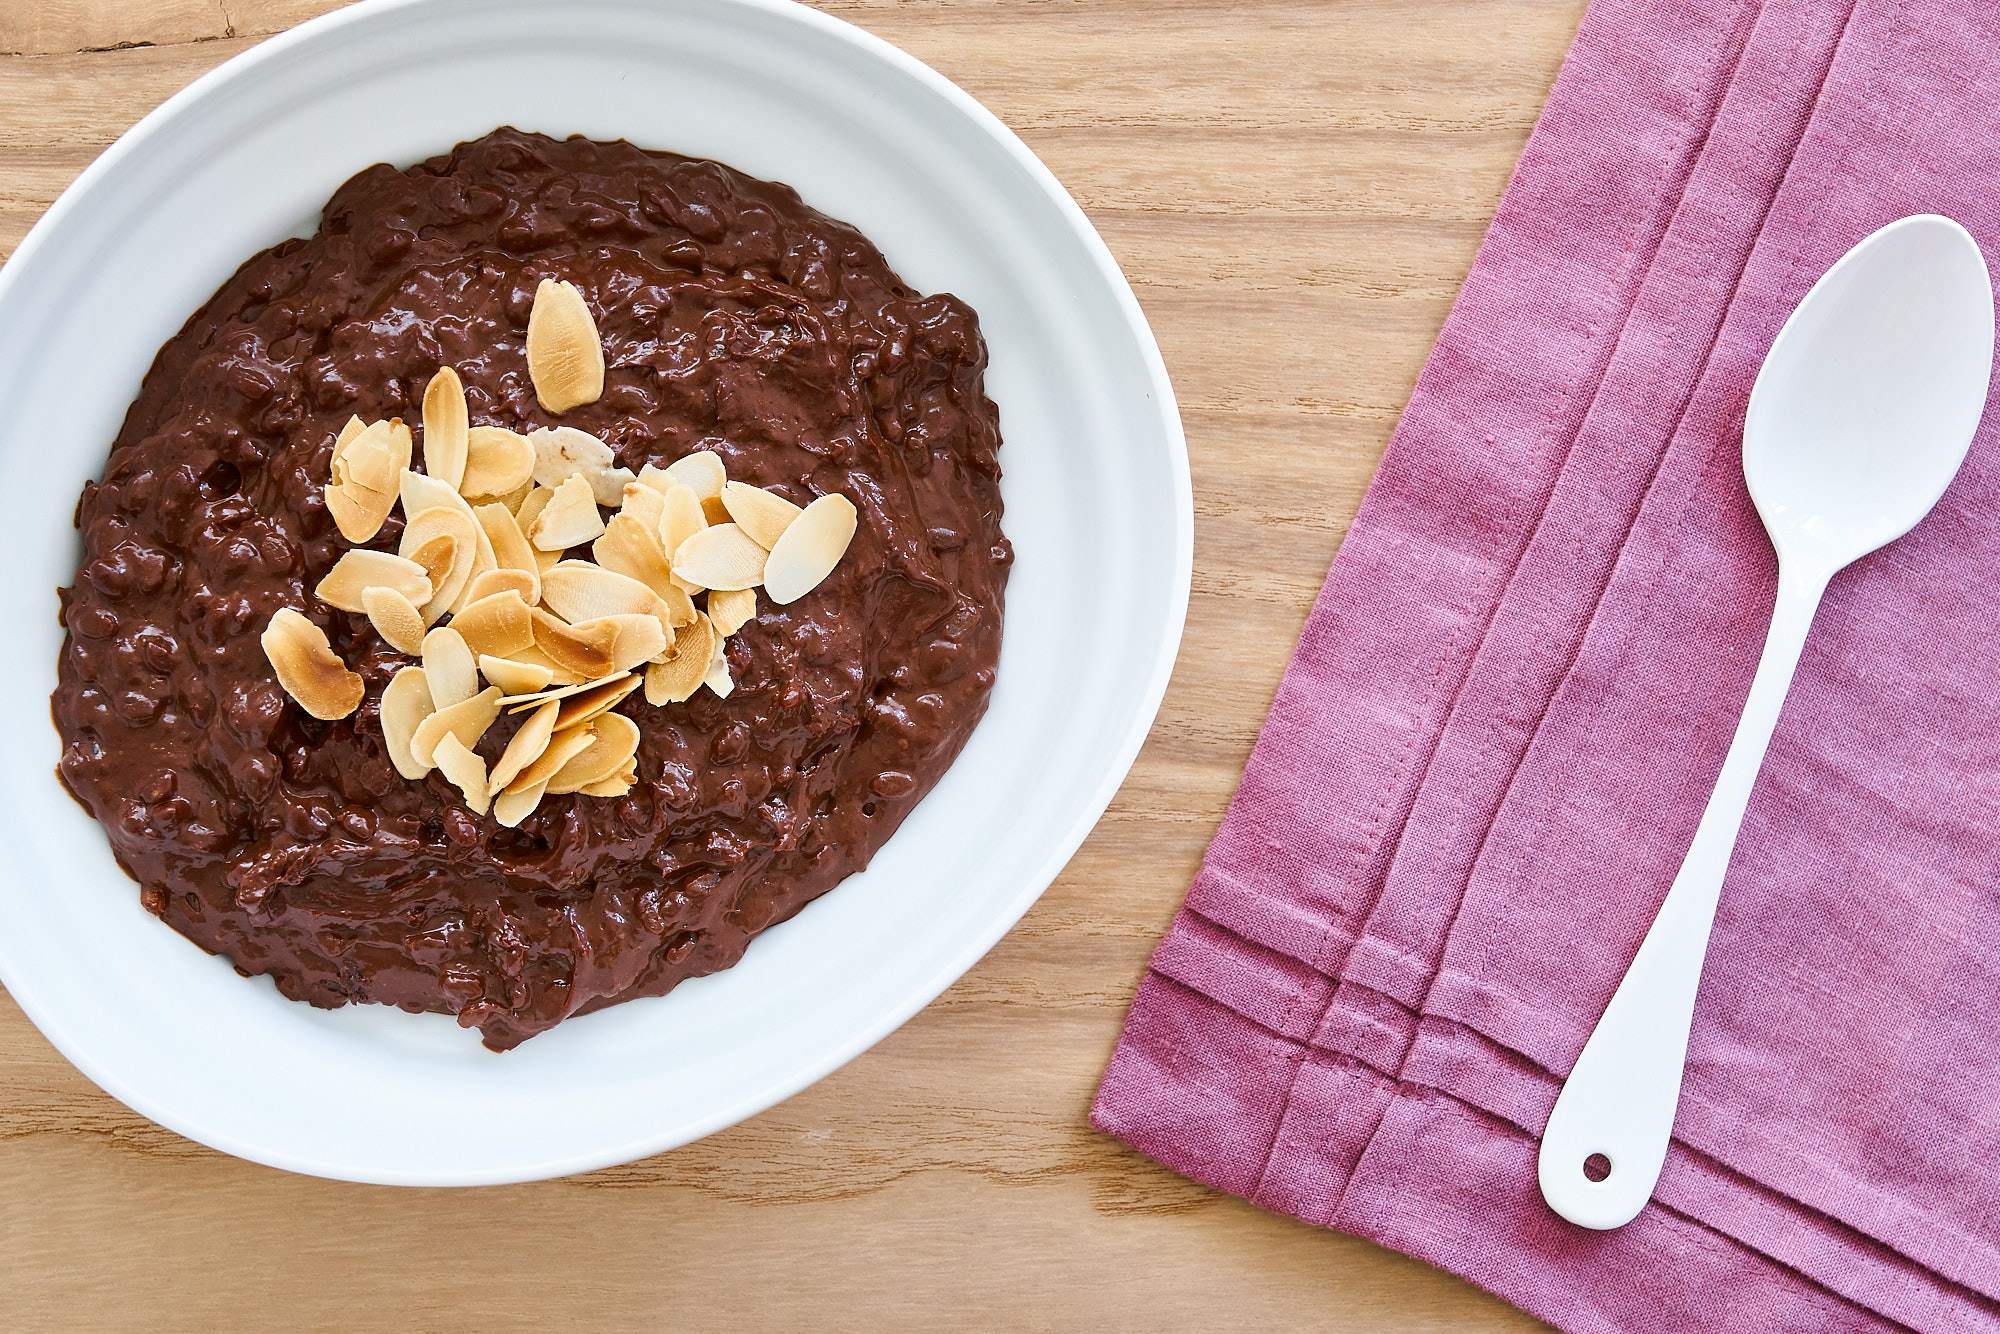 Chocolate Rice Pudding Chocolate Rice Pudding new images